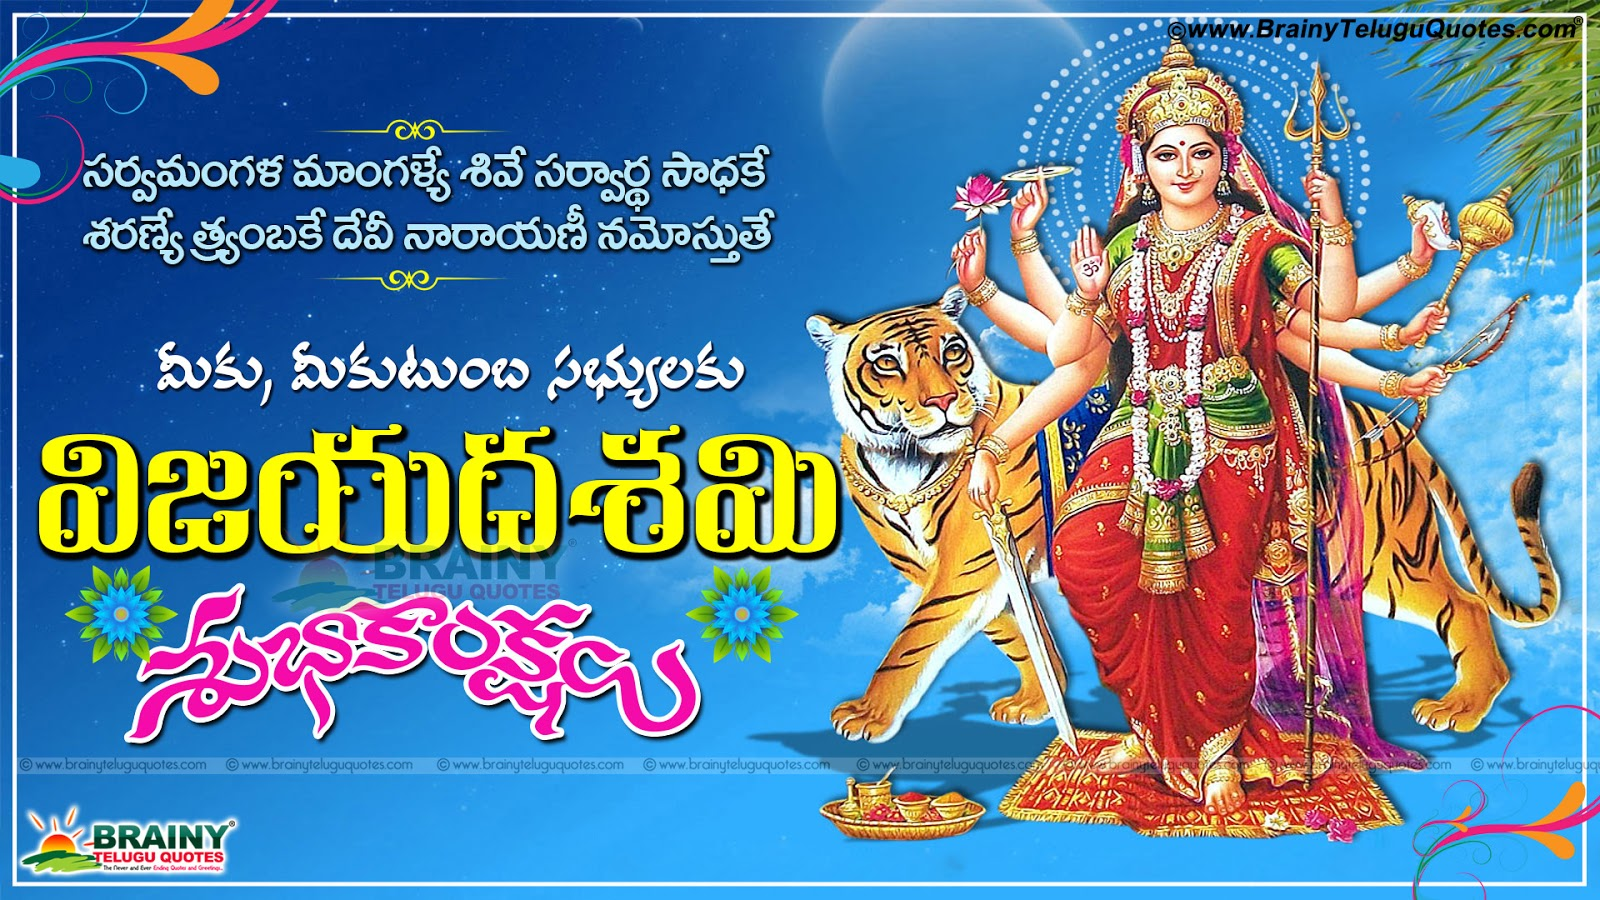 Happy dasara 2016 sms quotes prayer poems in telugu greetings images wish you happy dasara telugu quotes and nice imageshappy vijaya dashami 2016 quotes greetings m4hsunfo